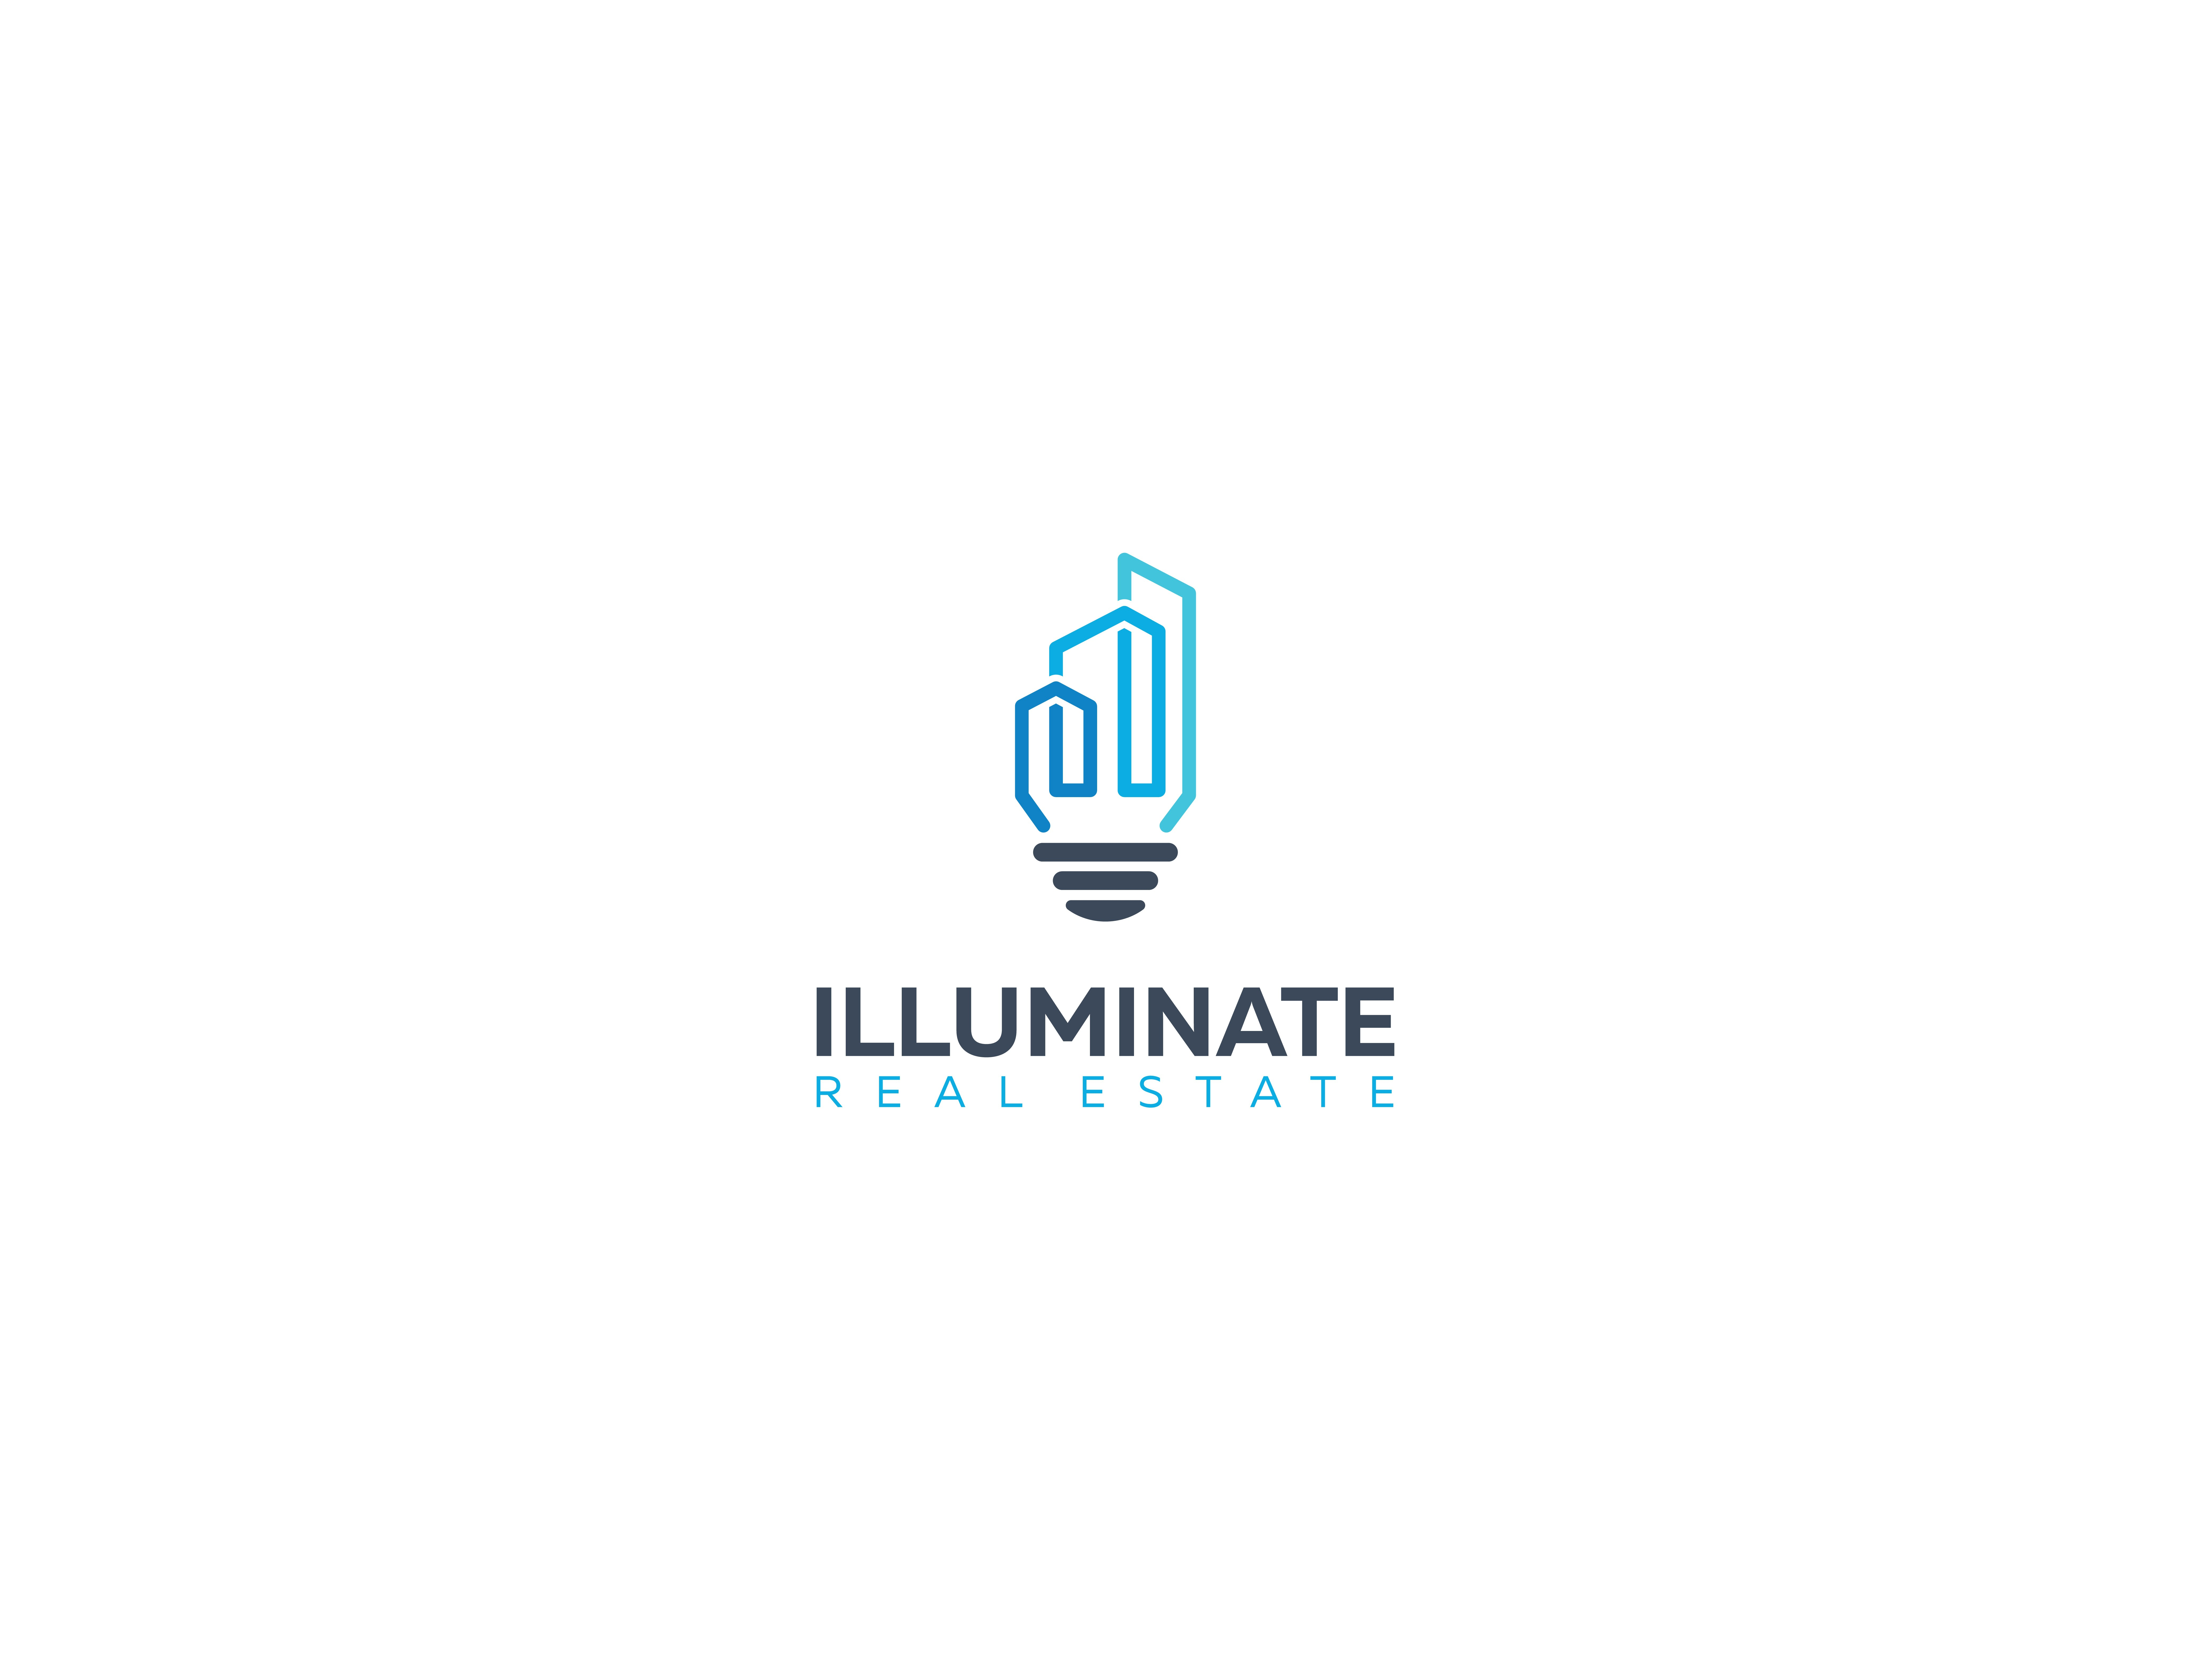 Shine your light on Illuminate Real Estate